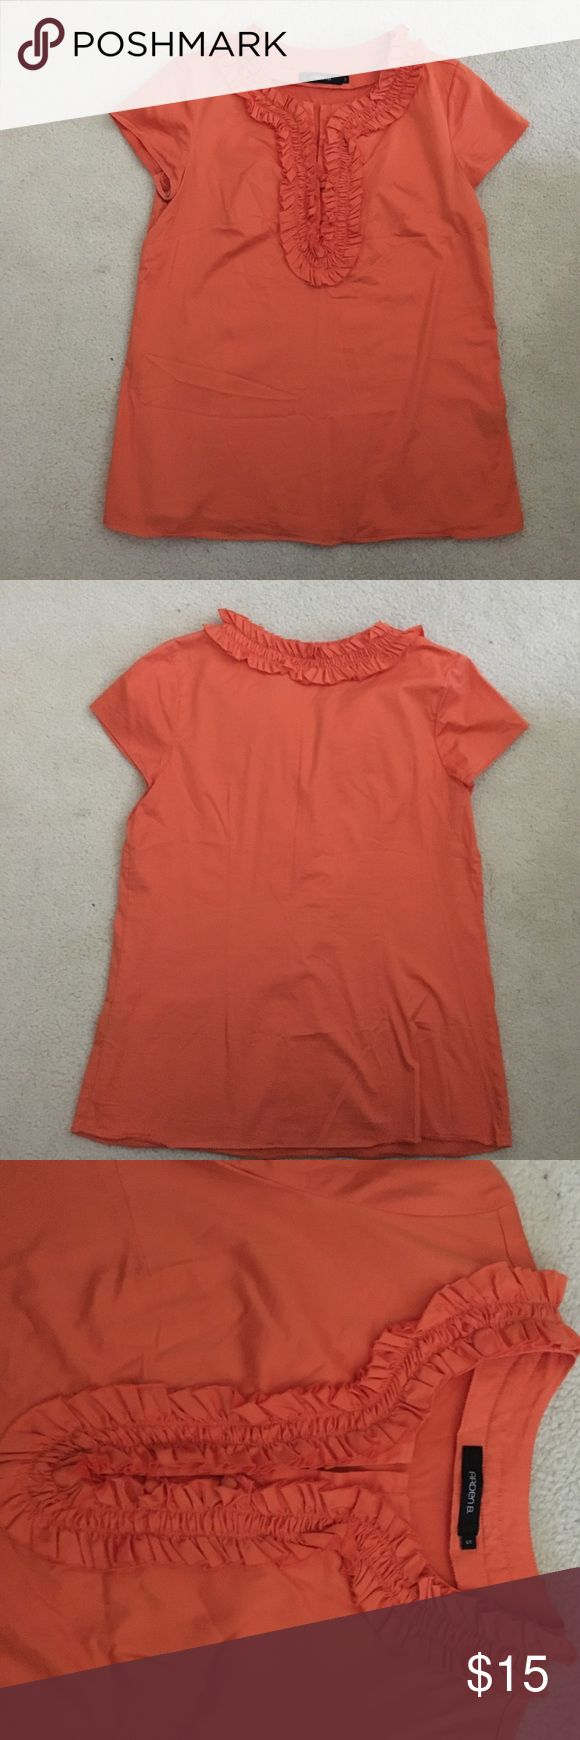 EUC Arden B. Orange Short Sleeve Top EUC Arden B. Orange Short Sleeve Top. With the material runxjed around neck line and down the front of the top (just about half way). The runched material near busy does have a few buttons to keep material together! Size Small Arden B Tops Tees - Short Sleeve